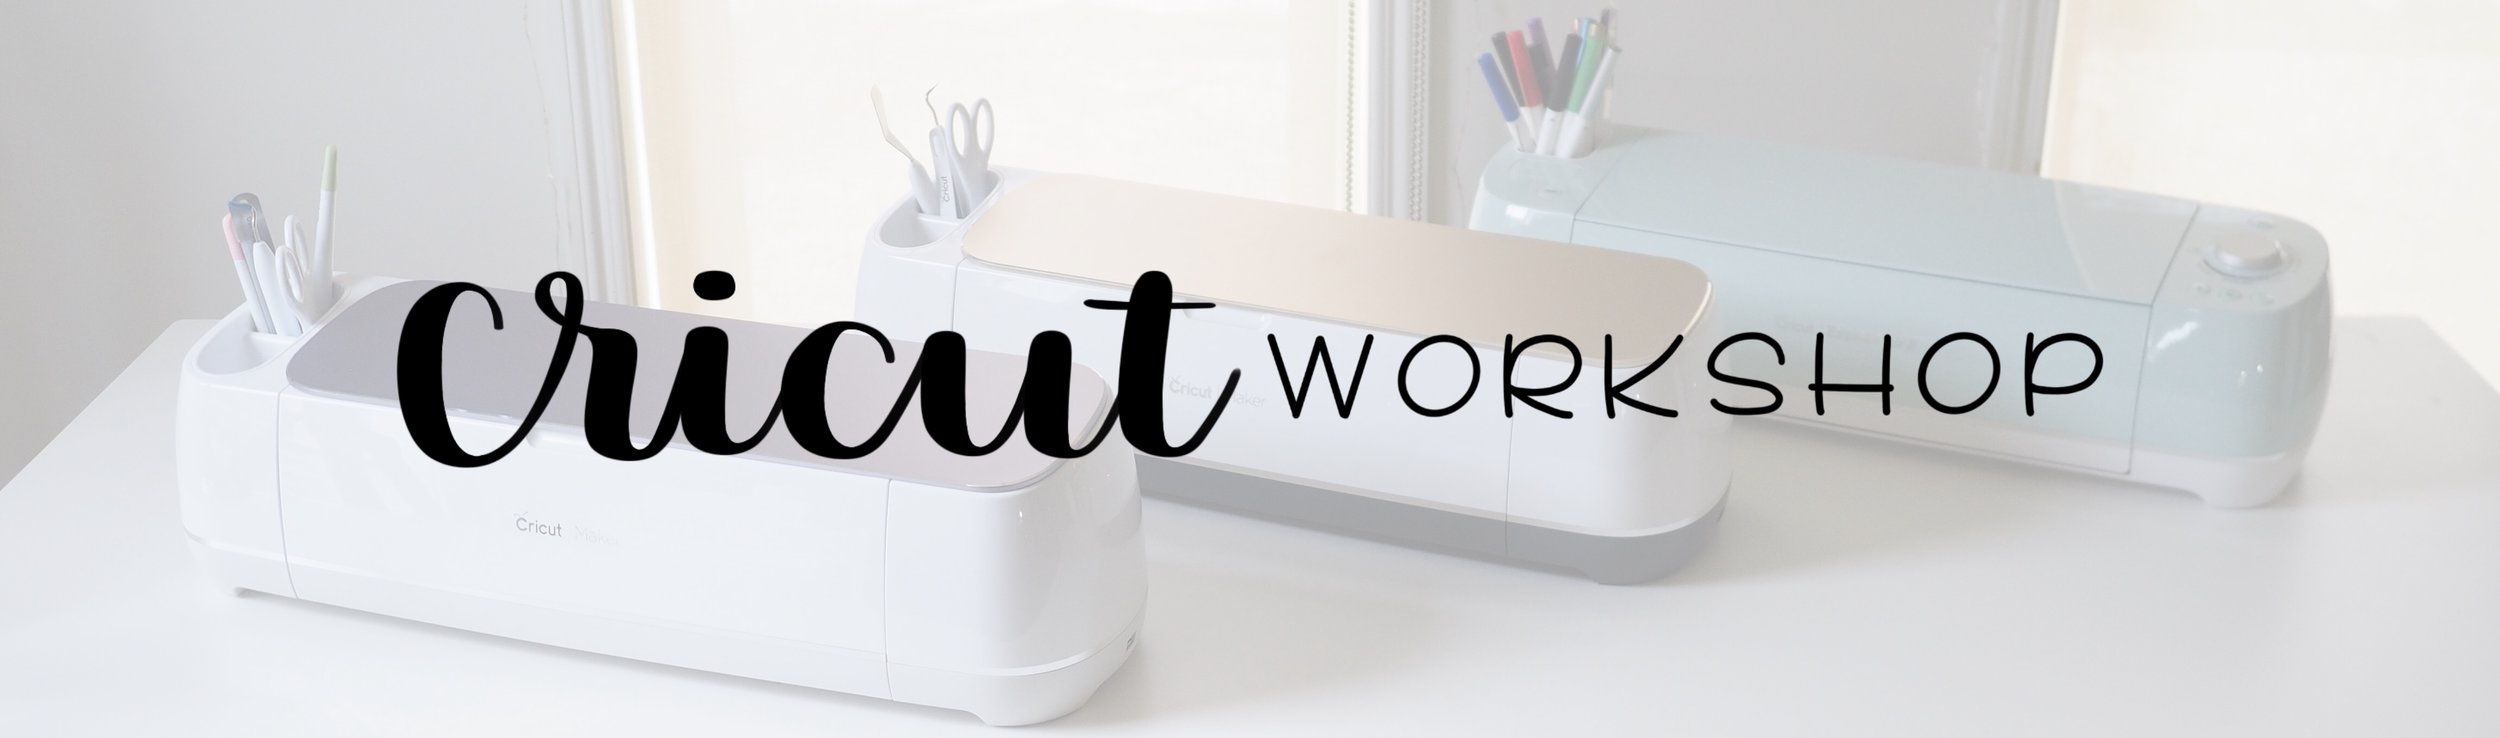 cricut workshop banner.jpg